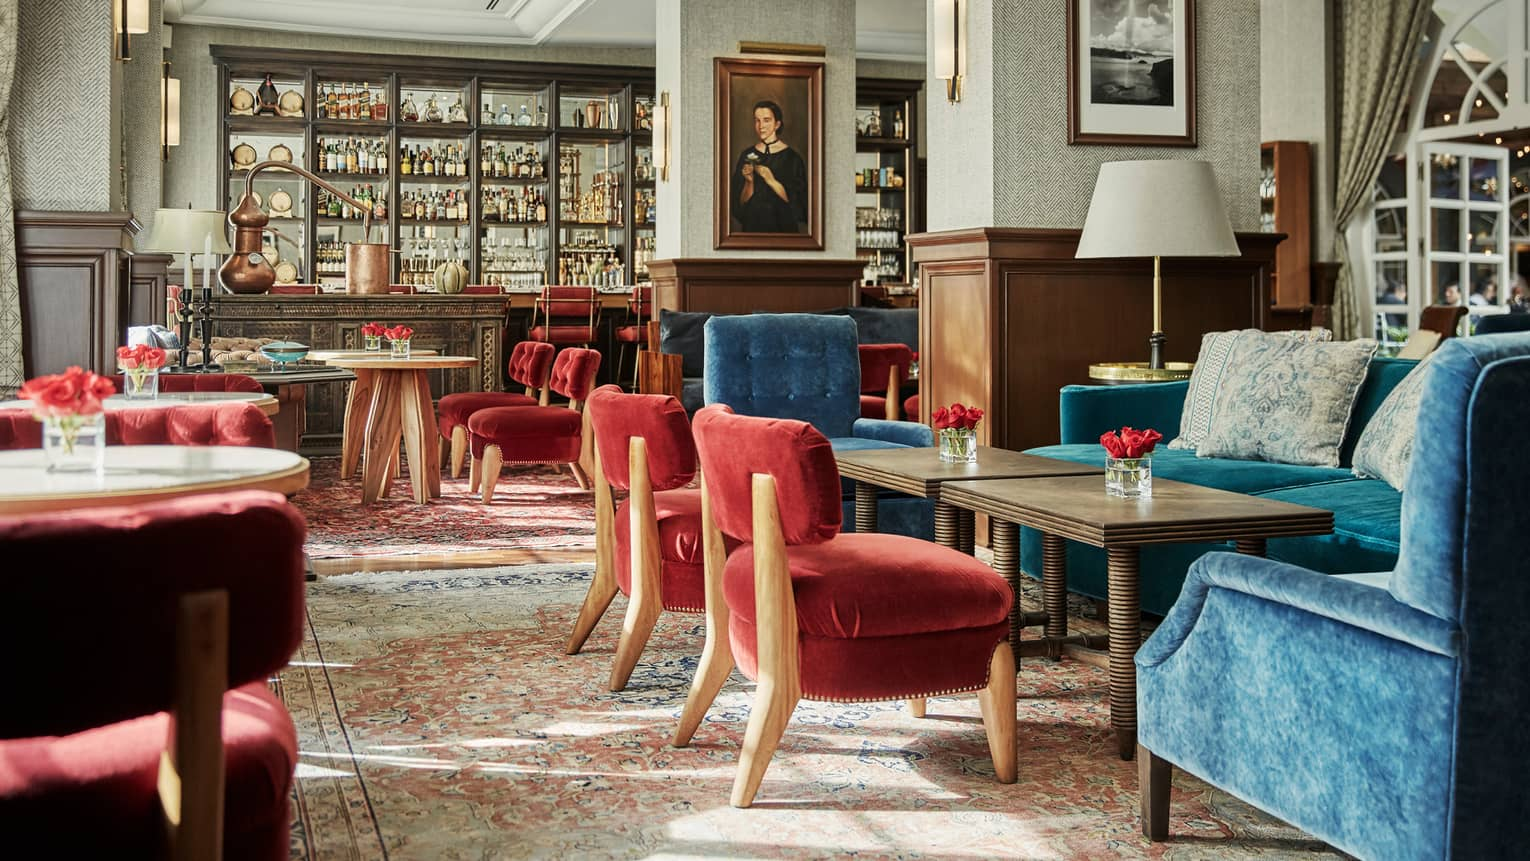 Fifty Mils dining room with red and blue velvet chairs, tables, antique-style bar, framed oil portrait